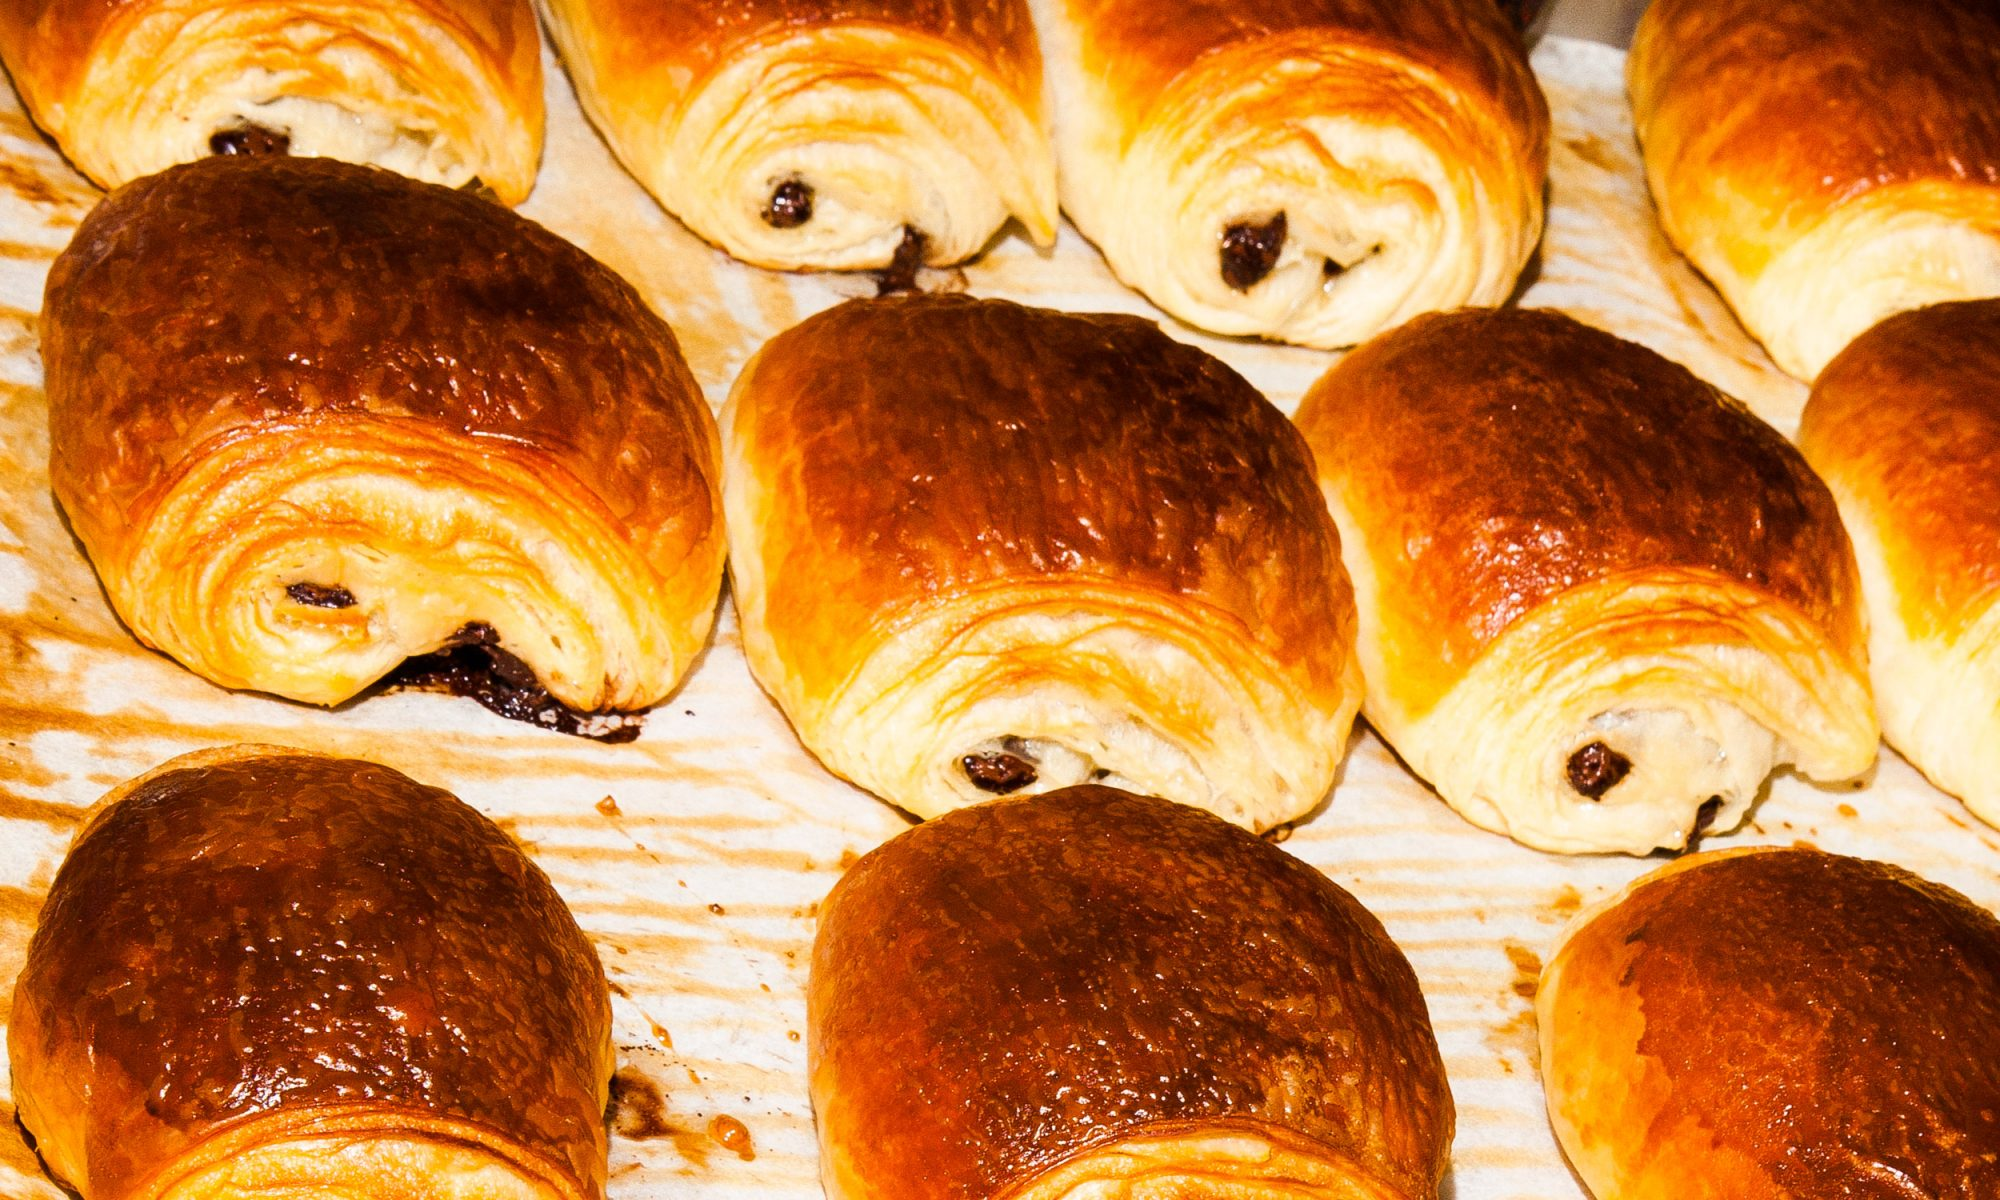 EC: Pain au Chocolat: The Method Behind the Flaky Madness